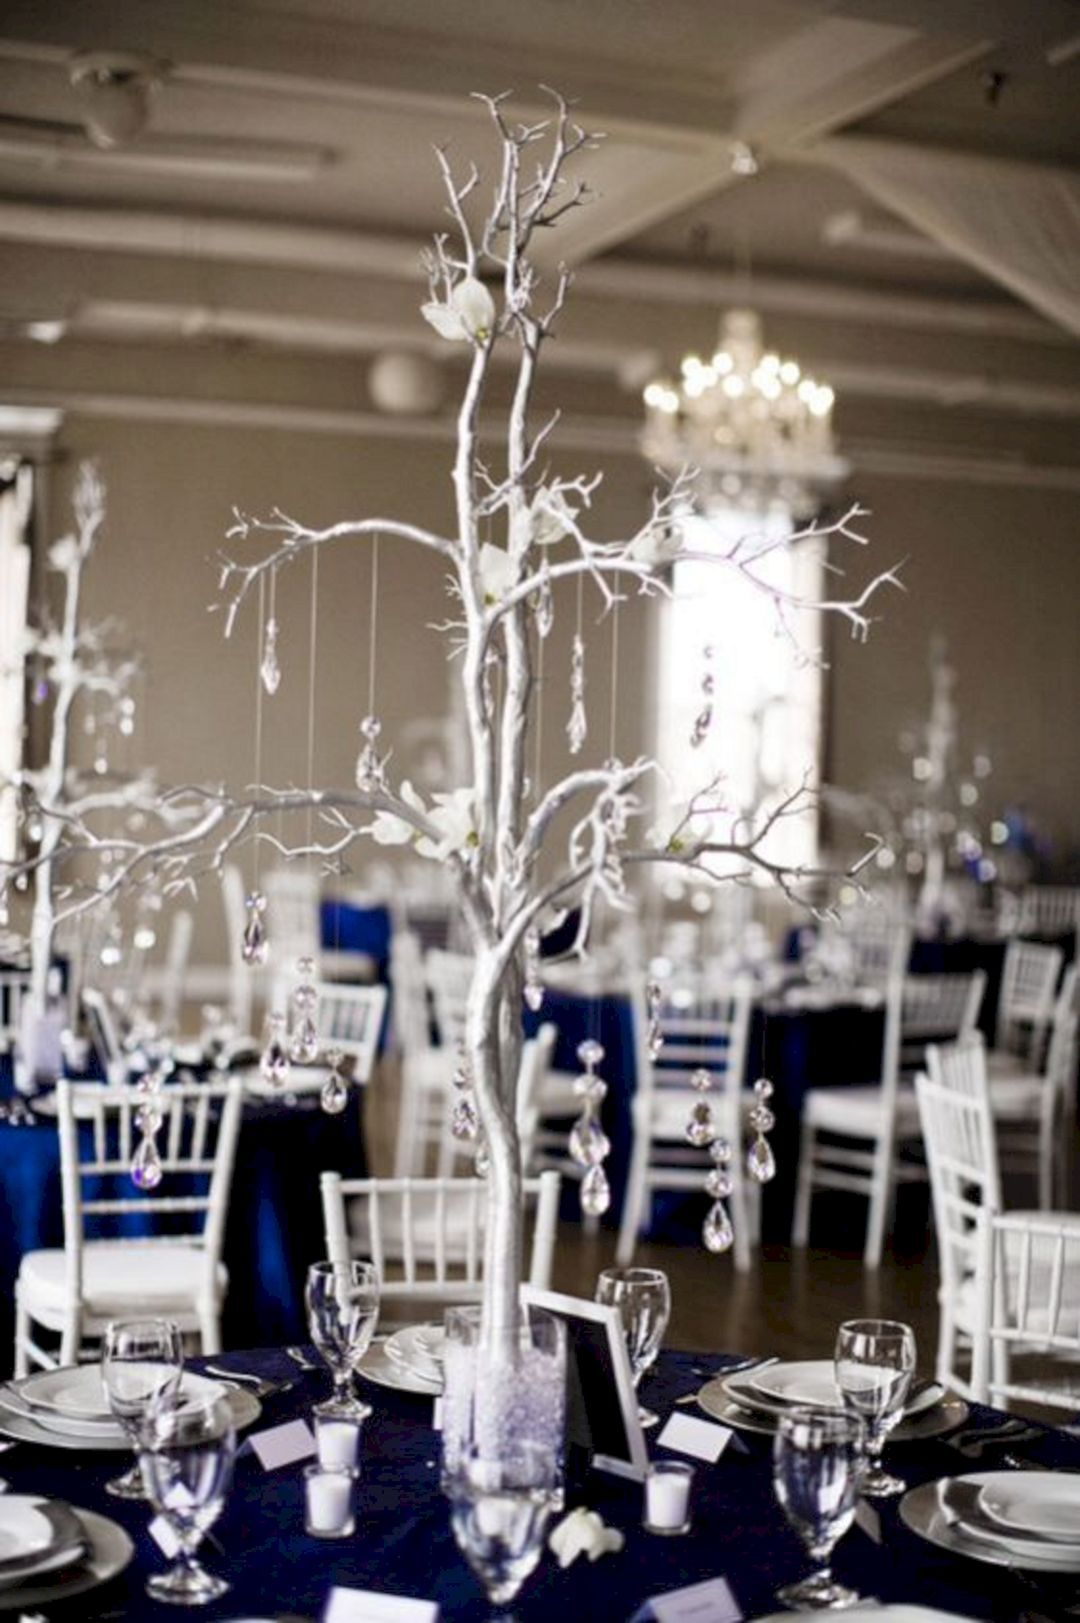 25 Elegant Blue And Silver Wedding Decorations Ideas For Wedding Decor Perfectly Silver Wedding Decorations Navy Blue Party Decorations Blue Party Decorations